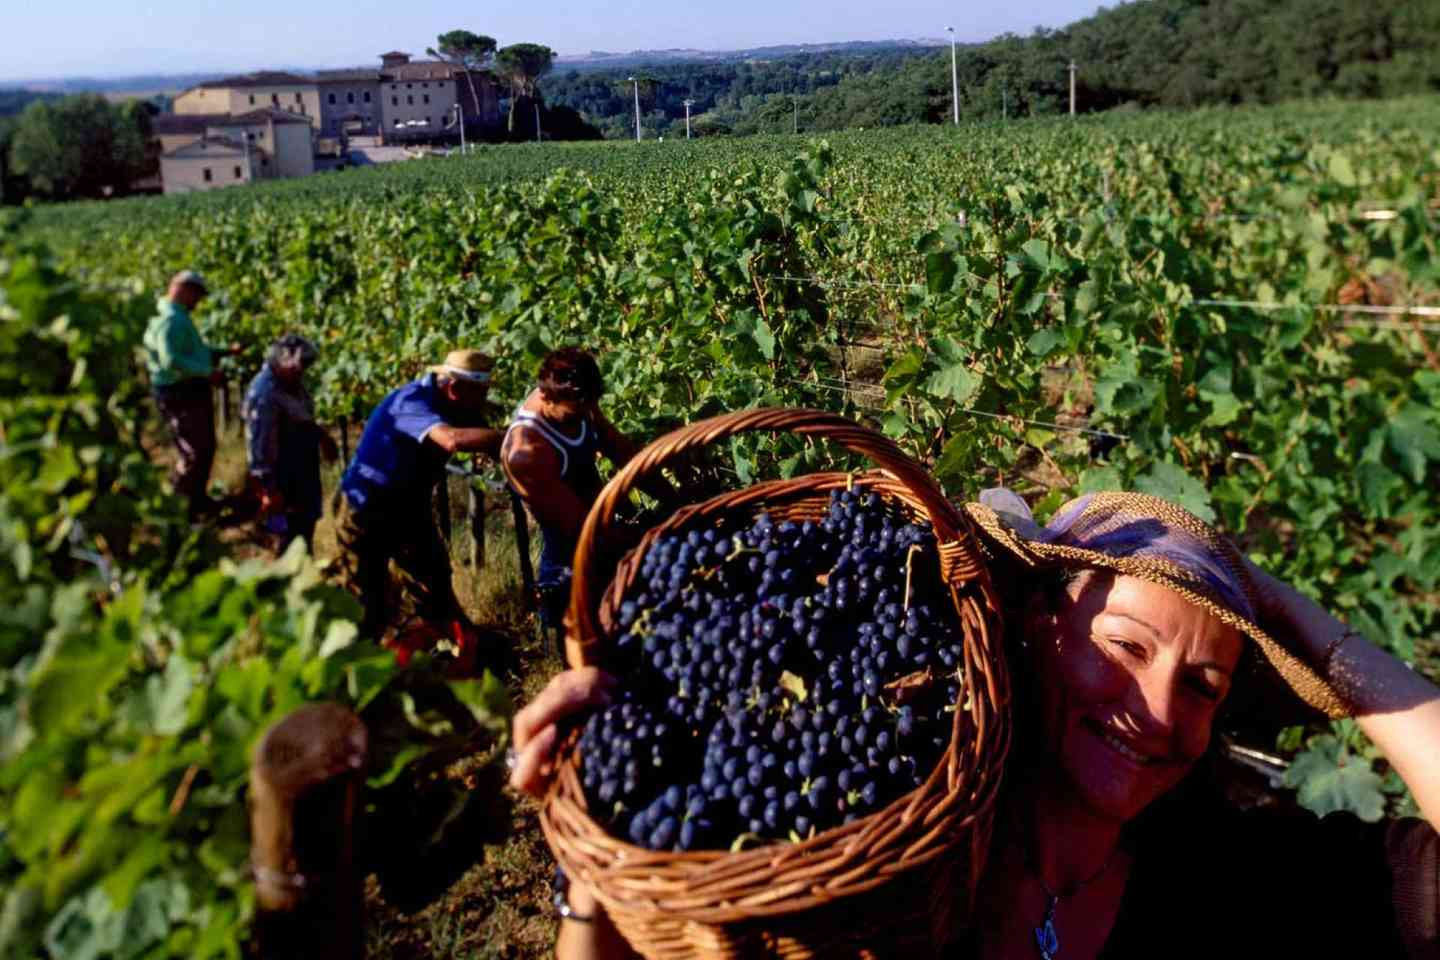 picking grapes in the field